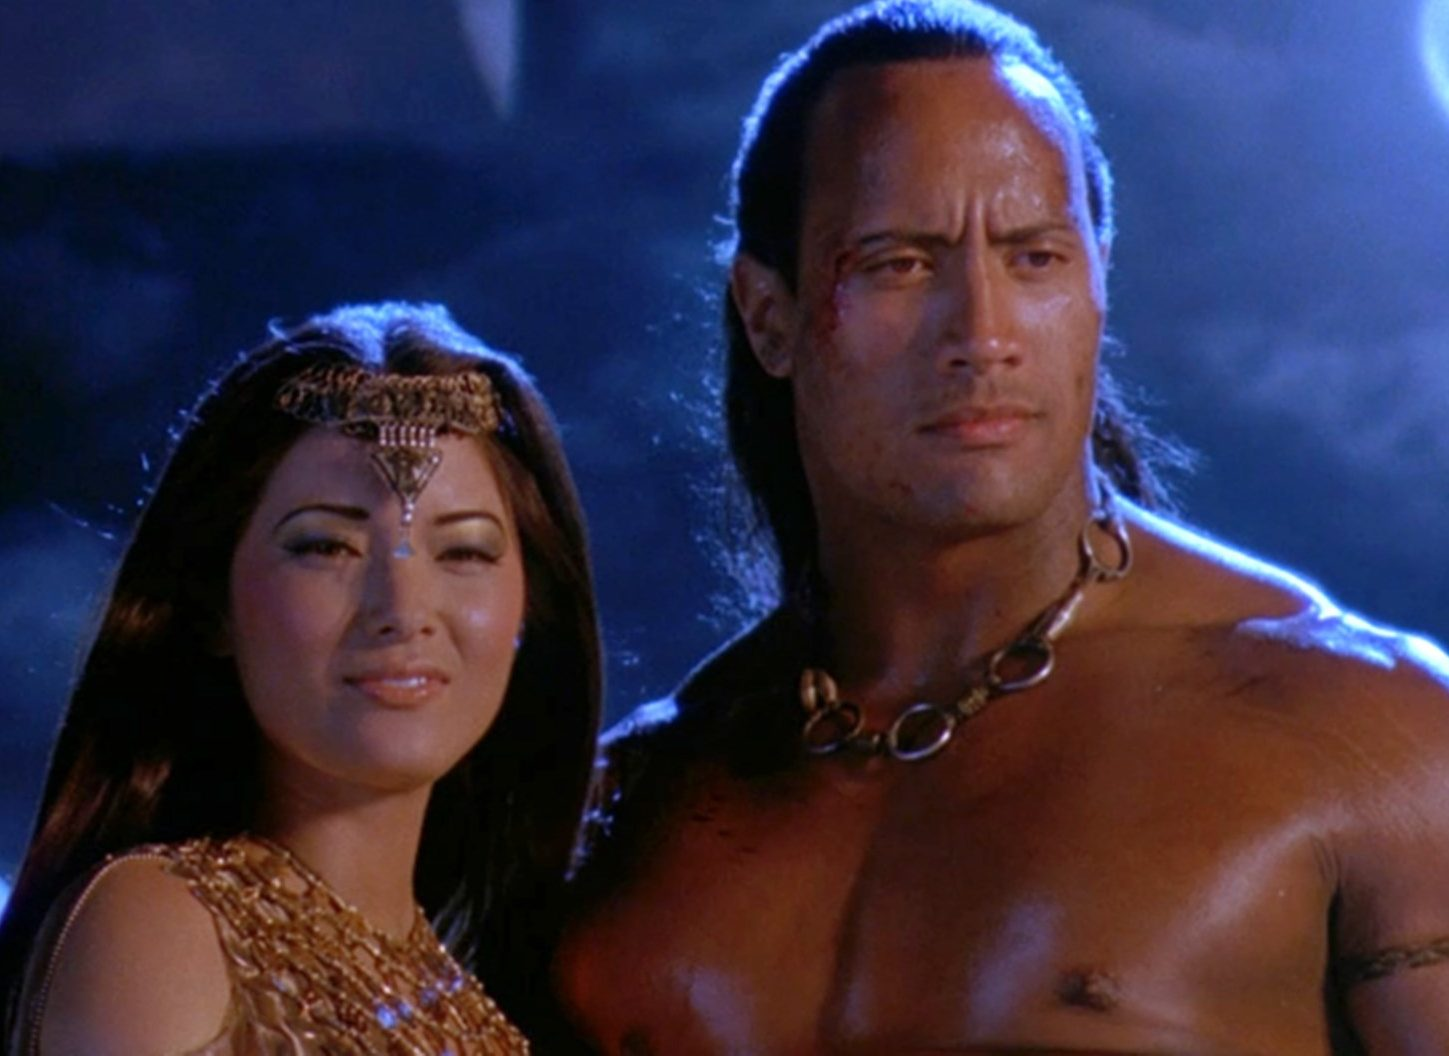 Scorpion King e1623226179403 The Best (And Worst) Films Inspired By Indiana Jones